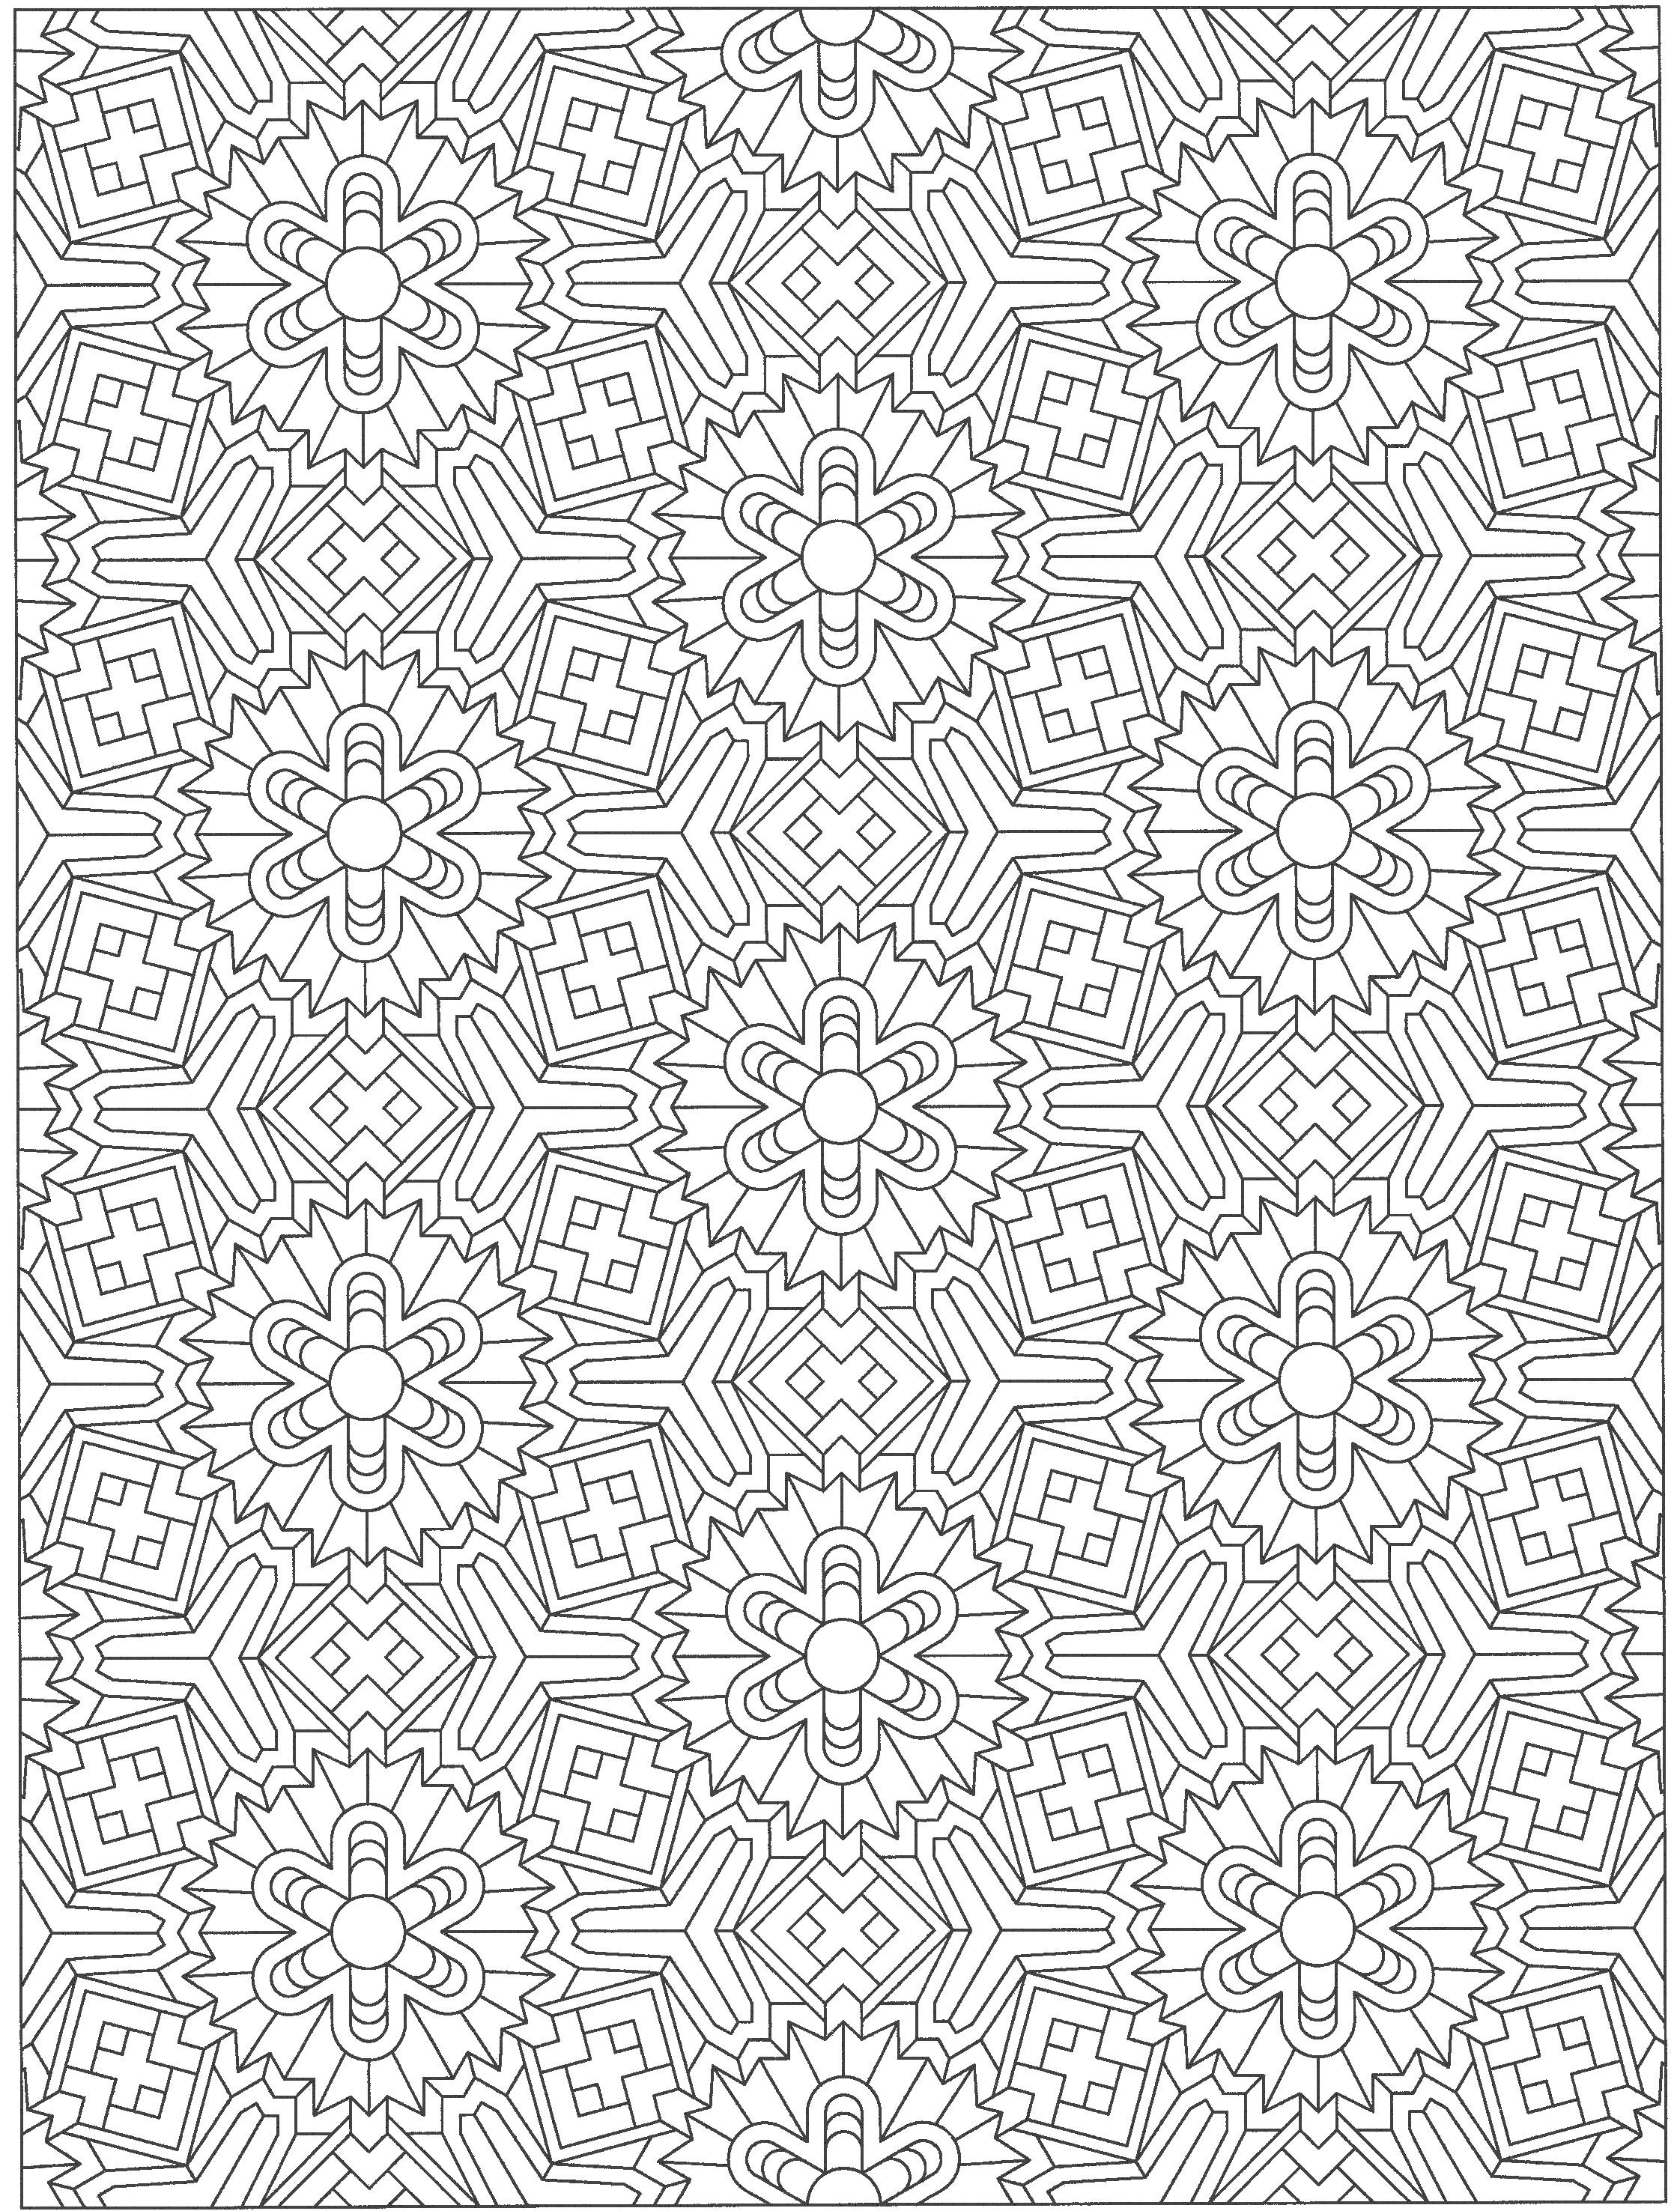 tessellation colouring pages tessellation pattern geometric coloring pages detailed tessellation pages colouring